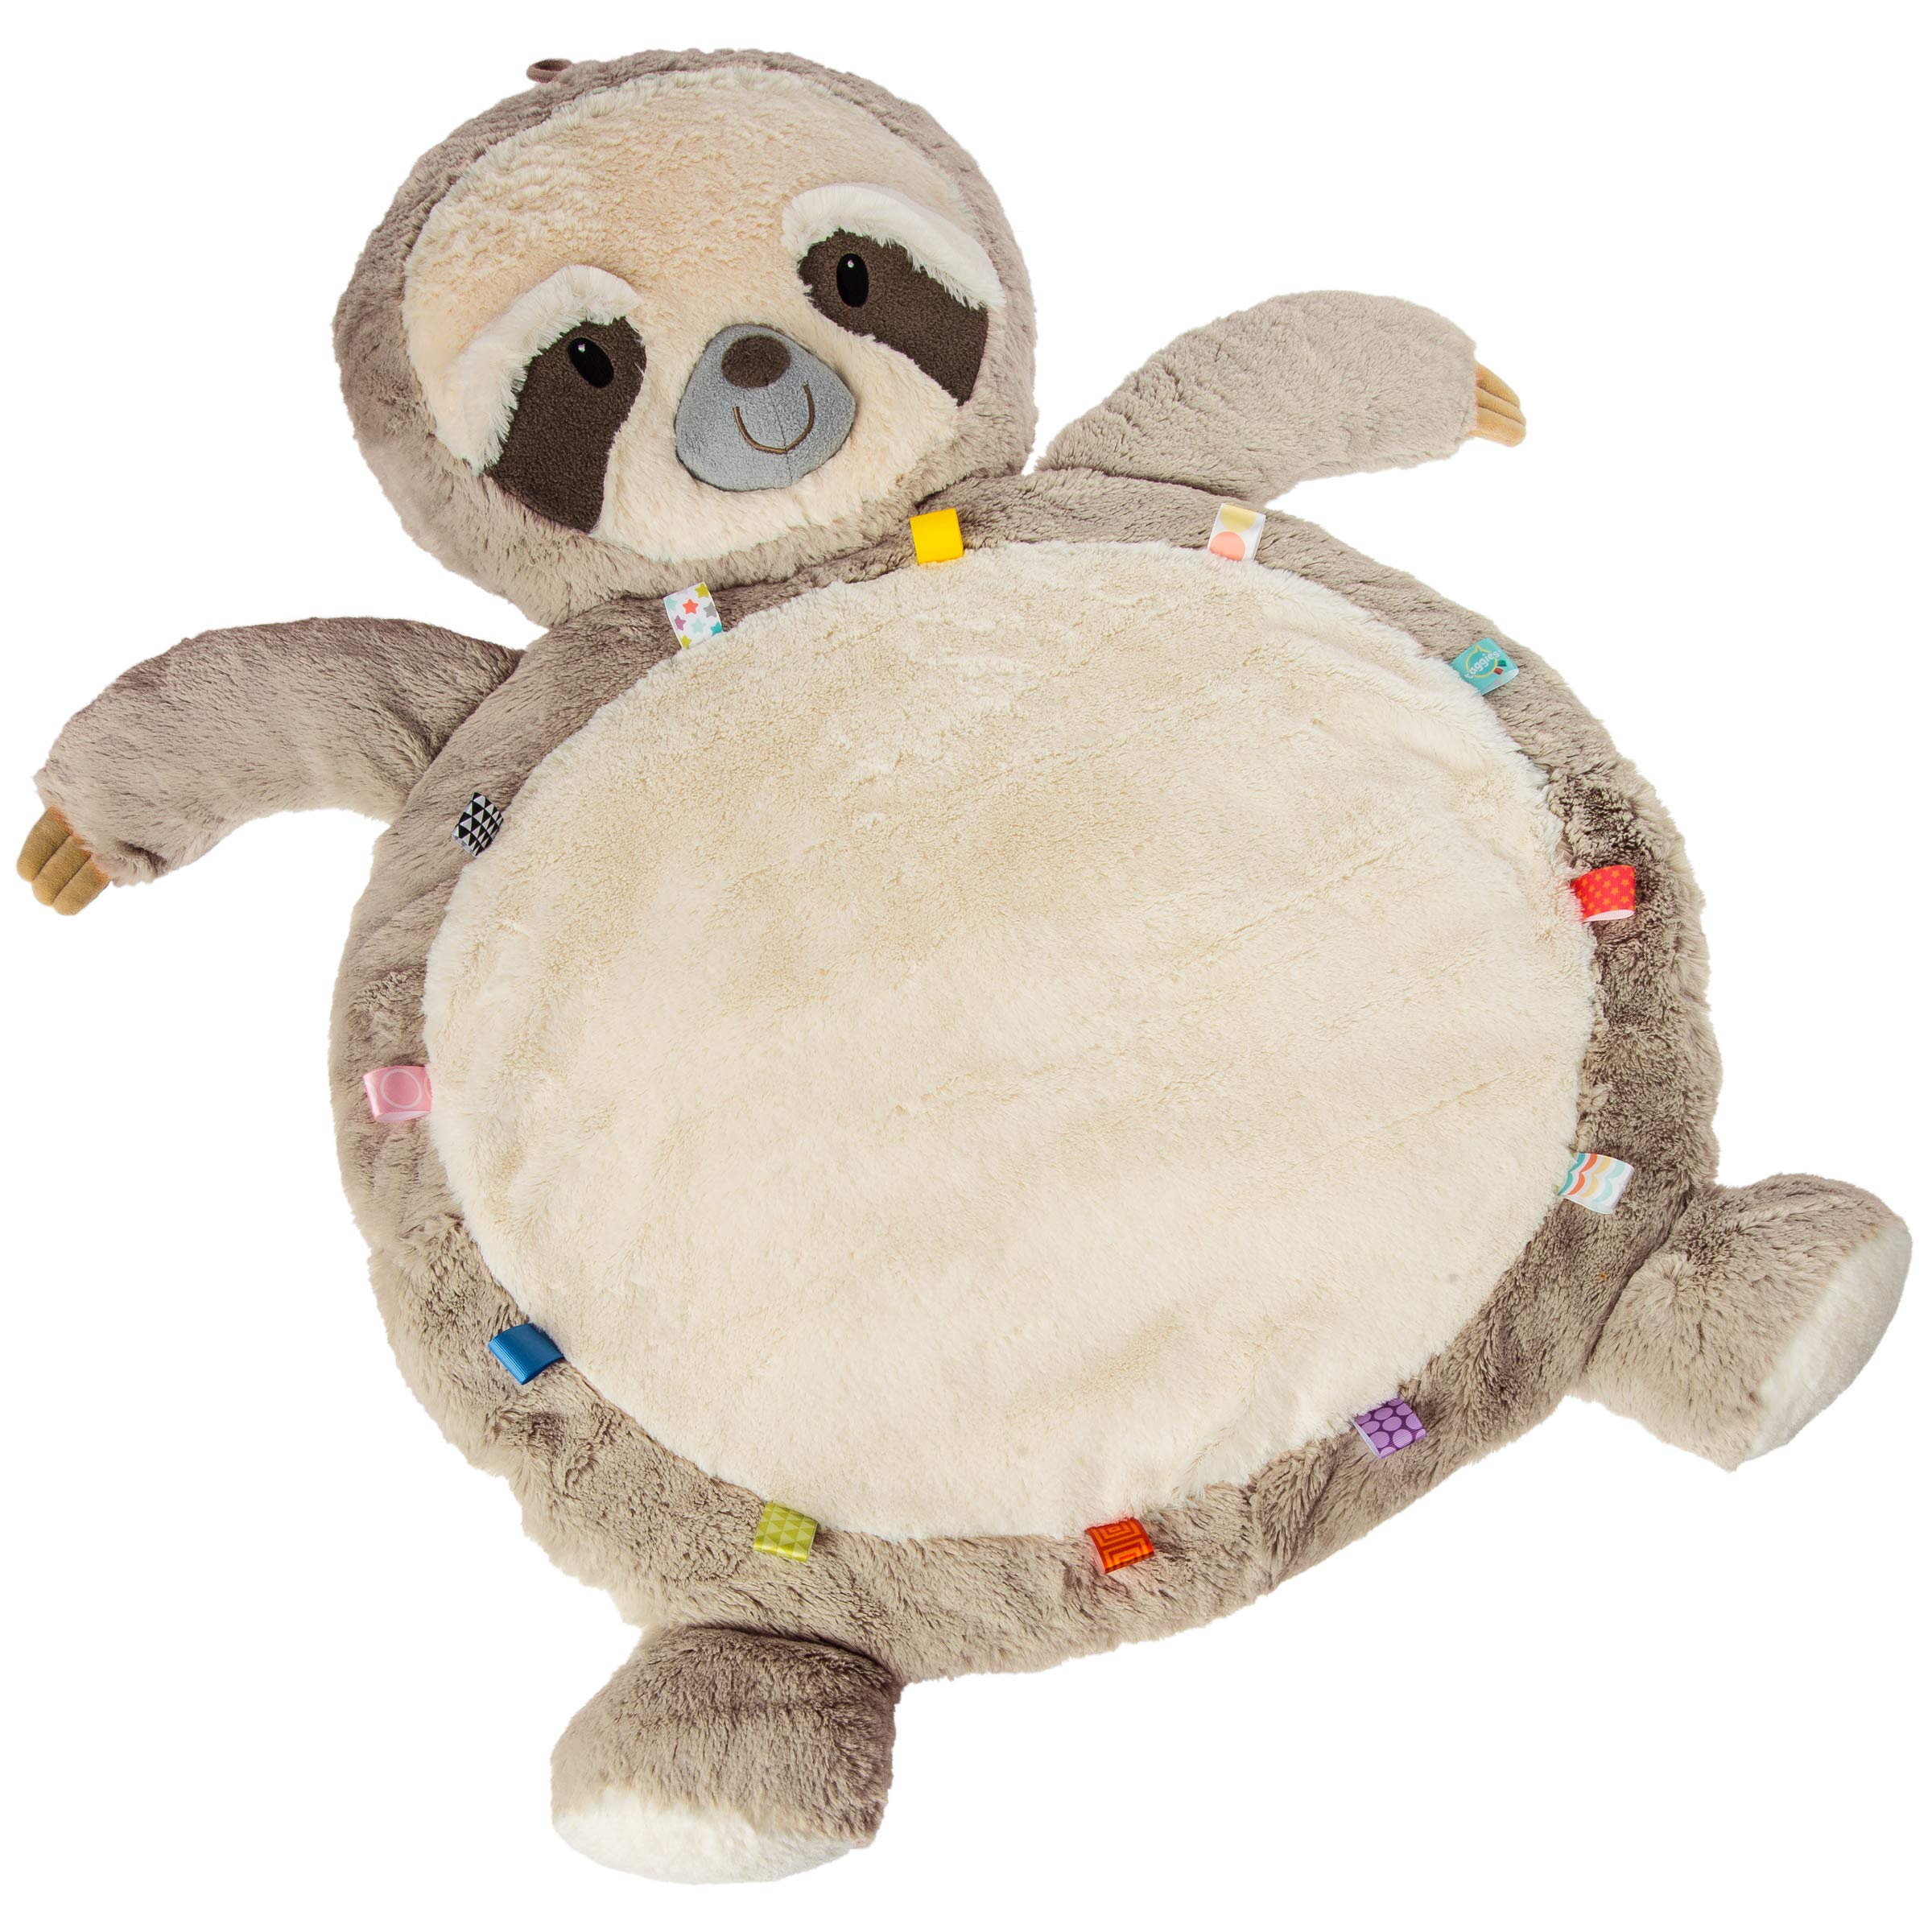 Taggies Super Soft Baby Mat, Molasses Sloth, 31 x 23-Inches